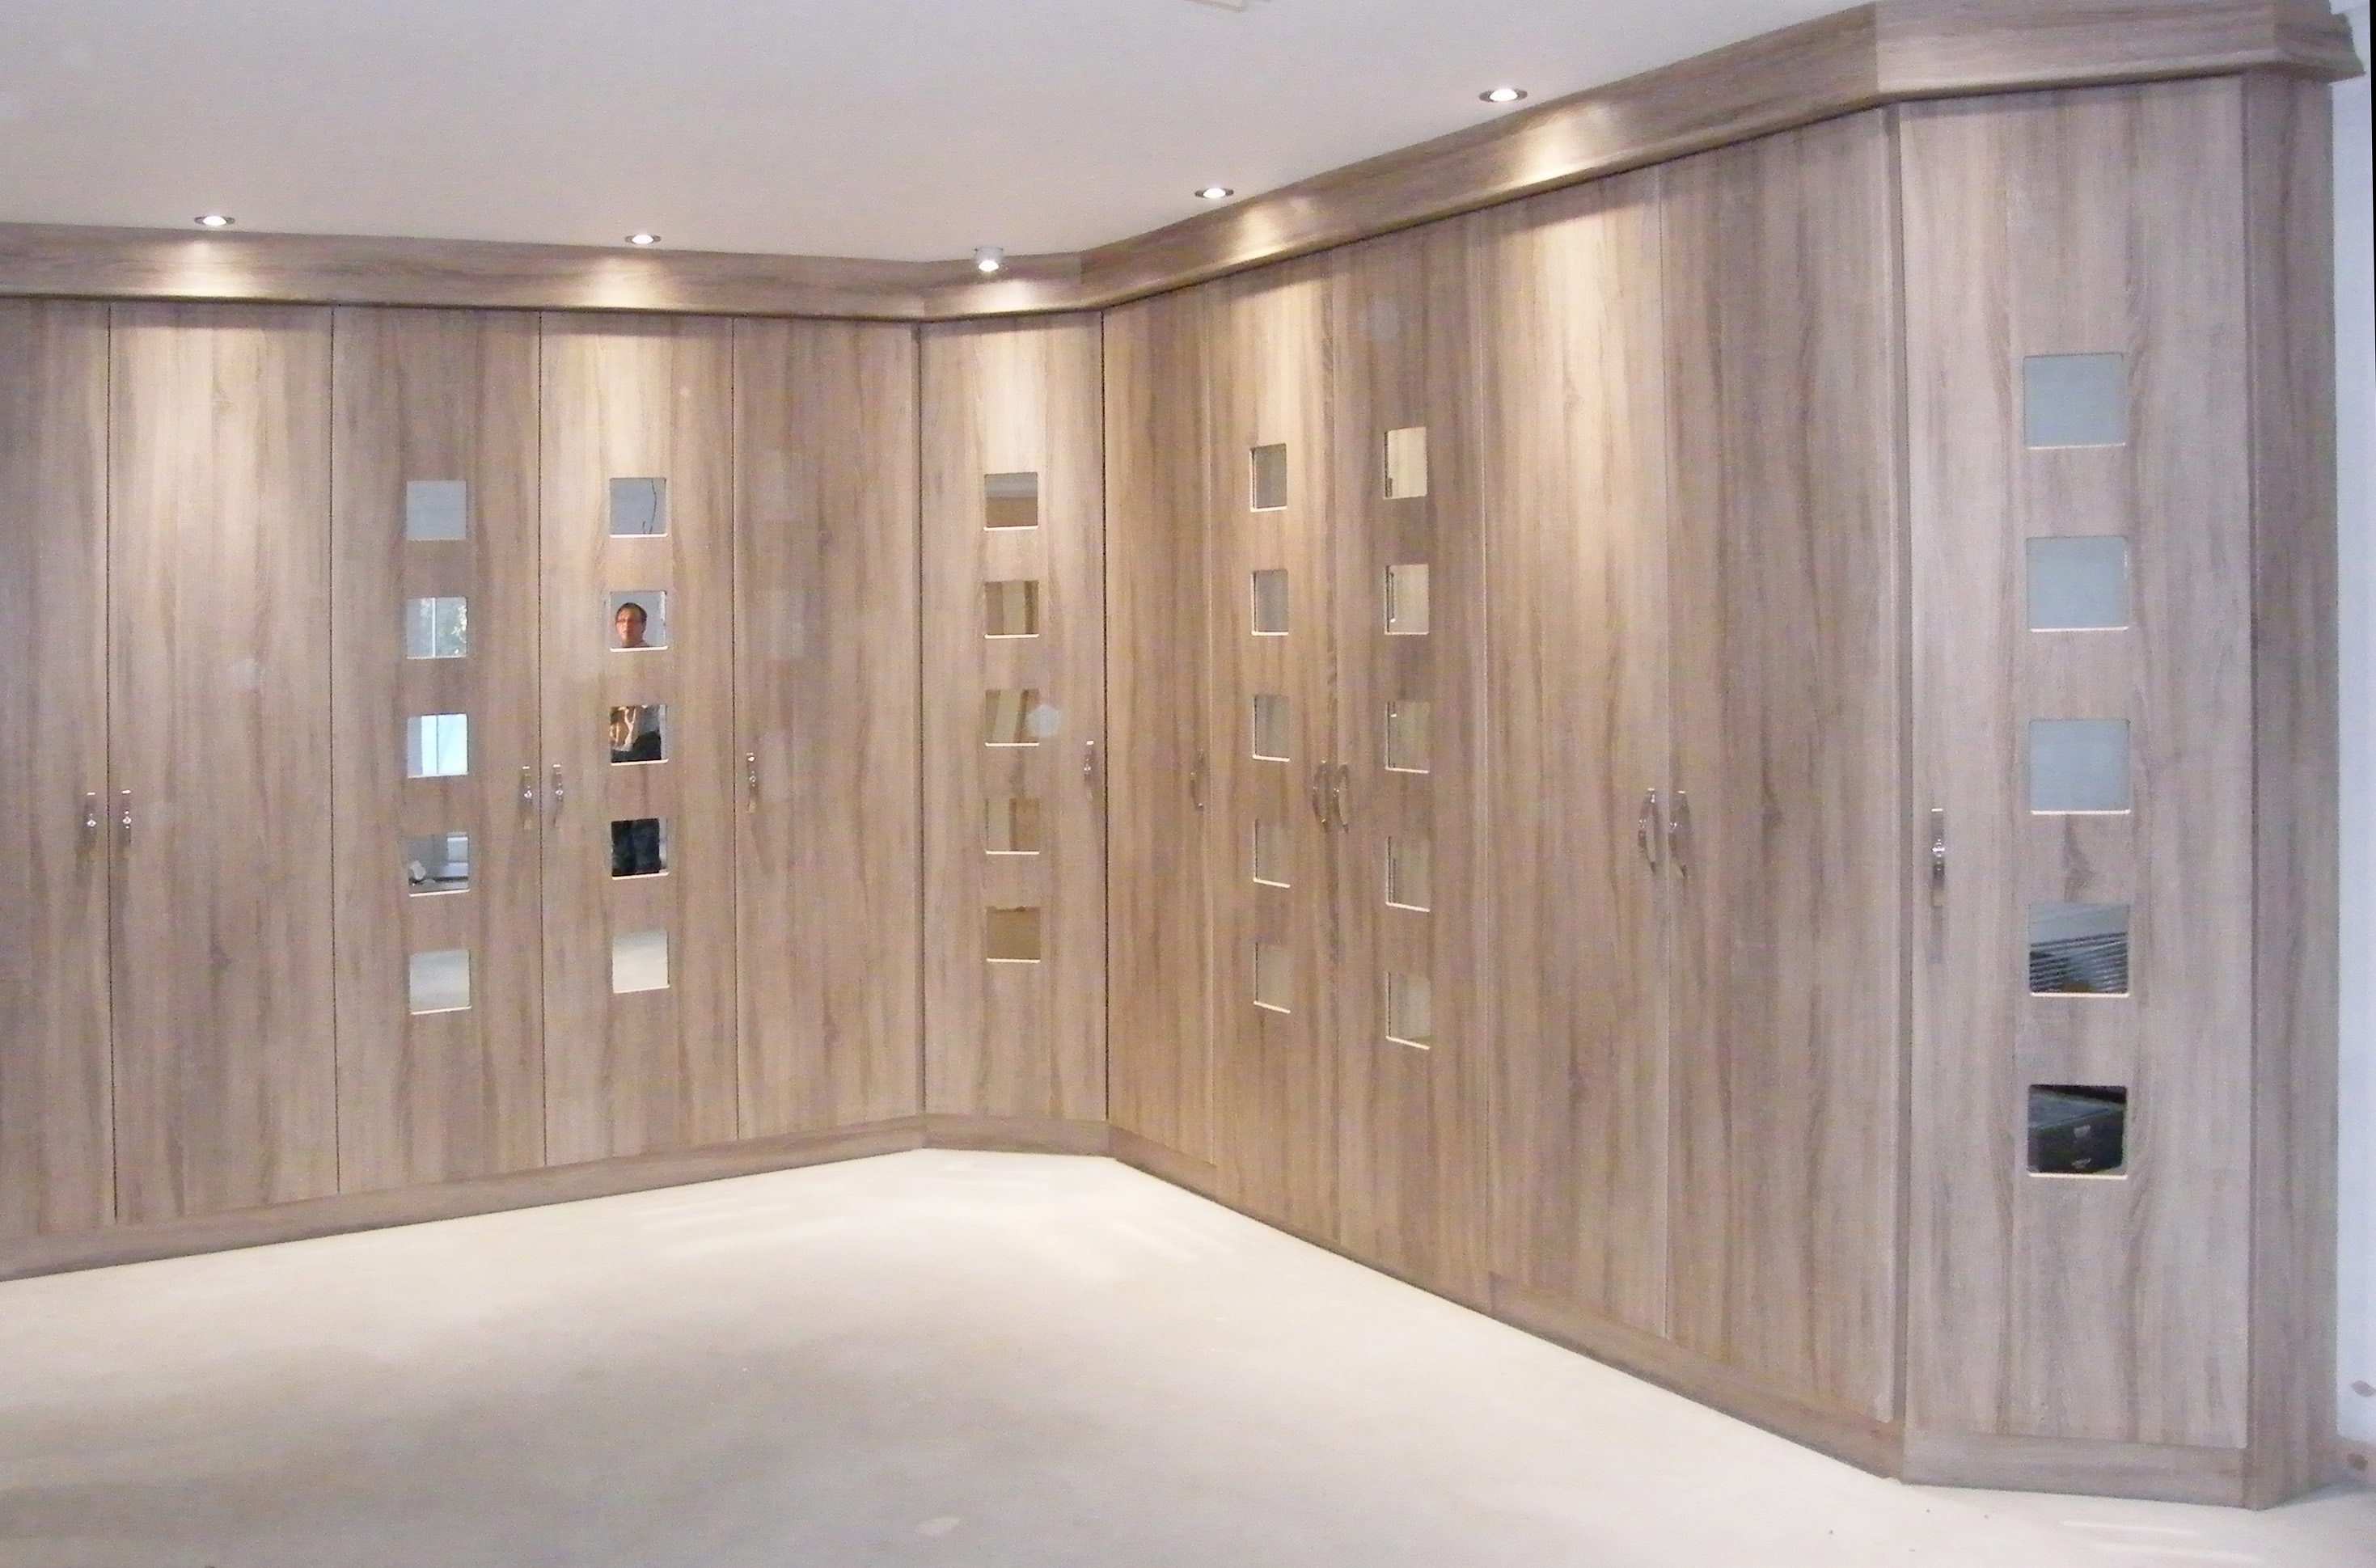 Contemporary fitted wardrobe design with sliding doors for wardrobes 3 panel with mirrored centre